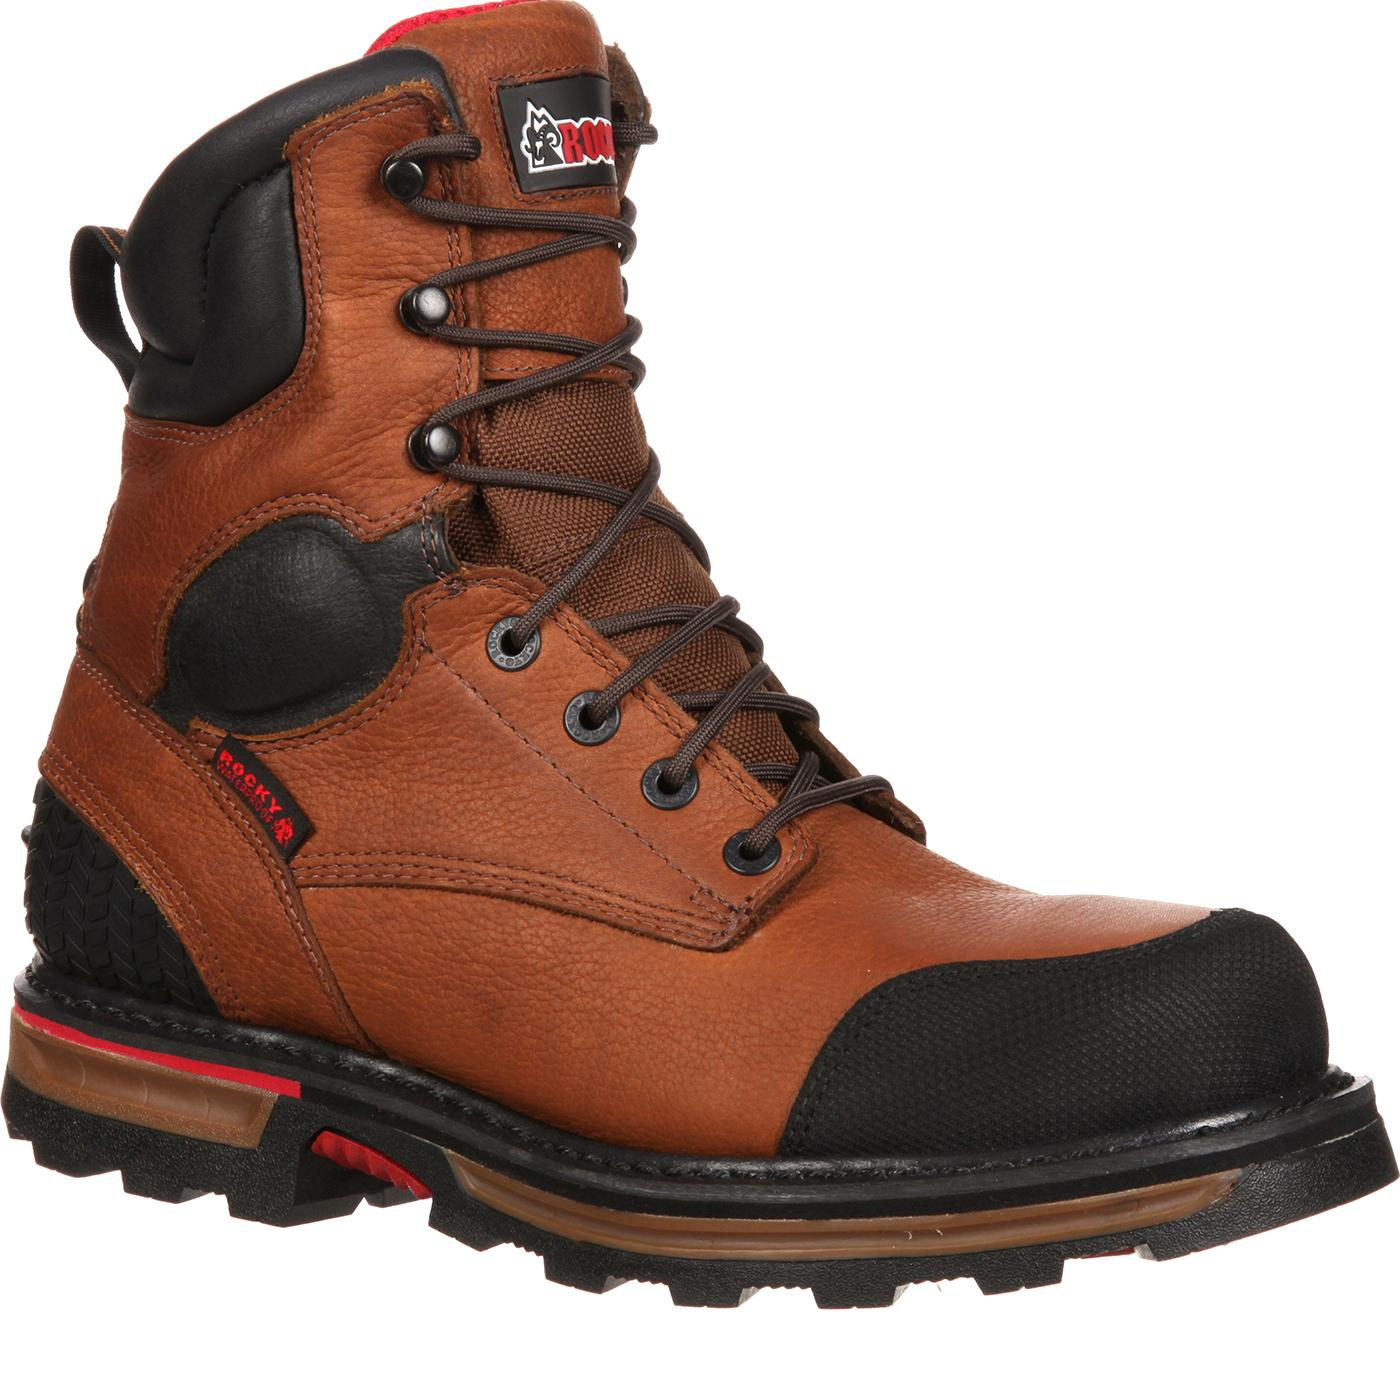 Steel Toe Work Boots designed to combat dirt ROCKY BOOT deb8638dc